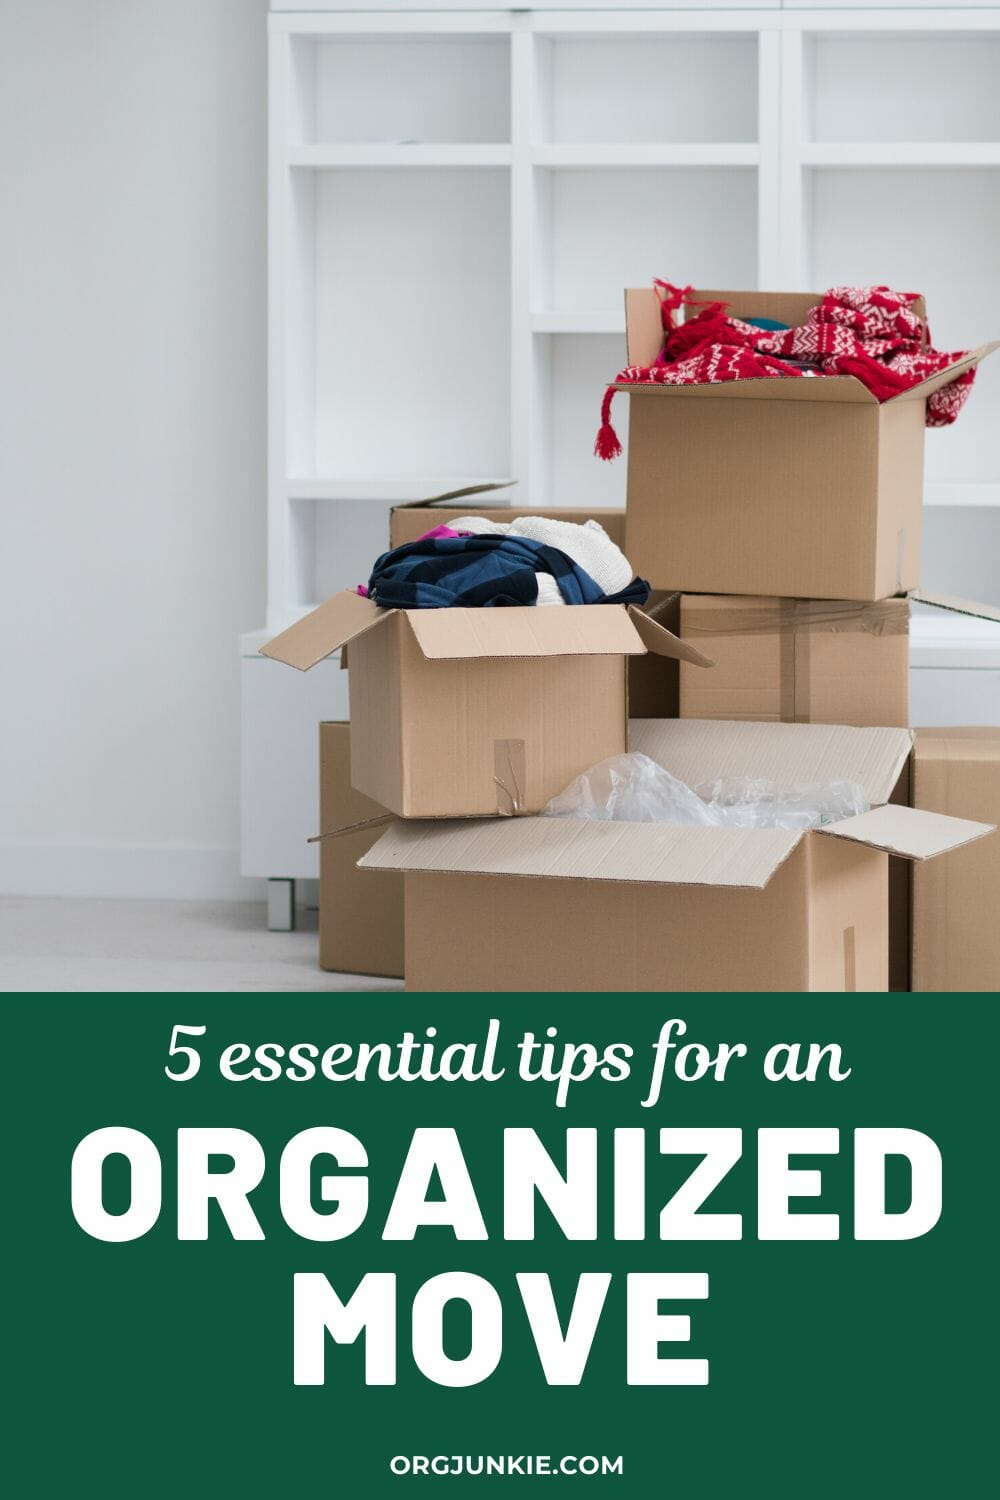 5 Essential Tips for an Organized Move at I'm an Organizing Junkie blog